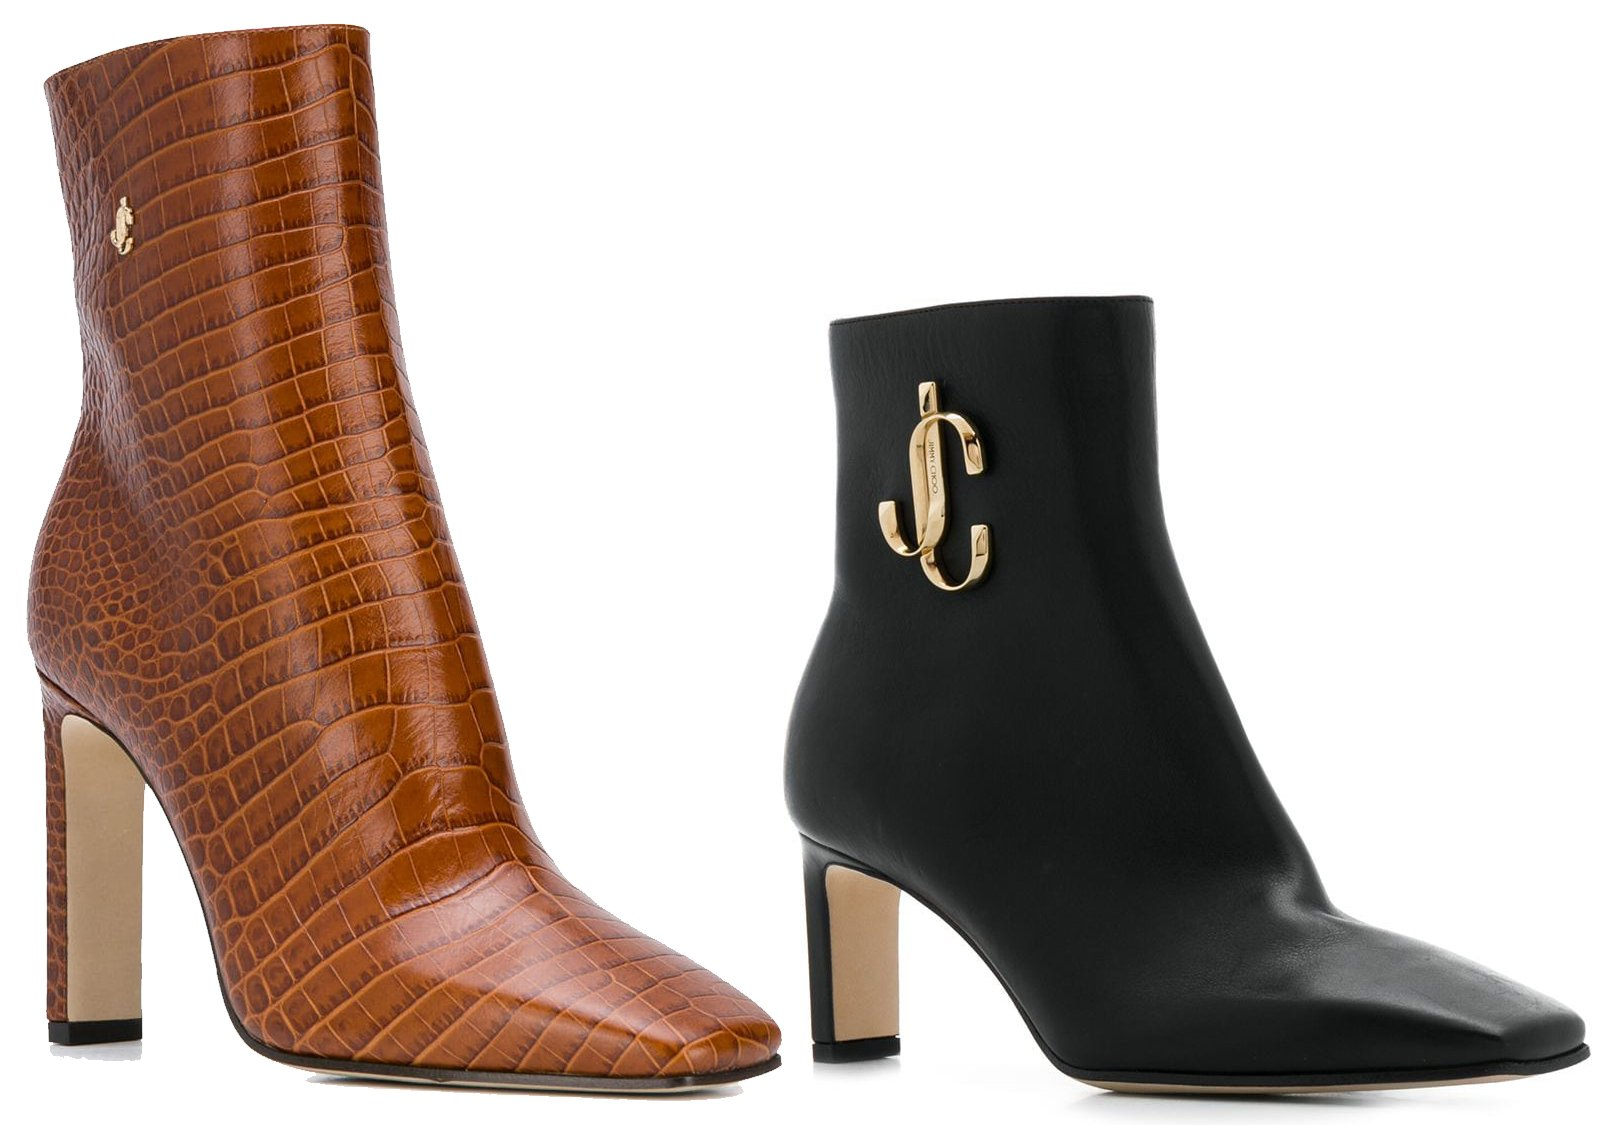 The Minori features the new interlocking JC logo with square toes, and thin block heels